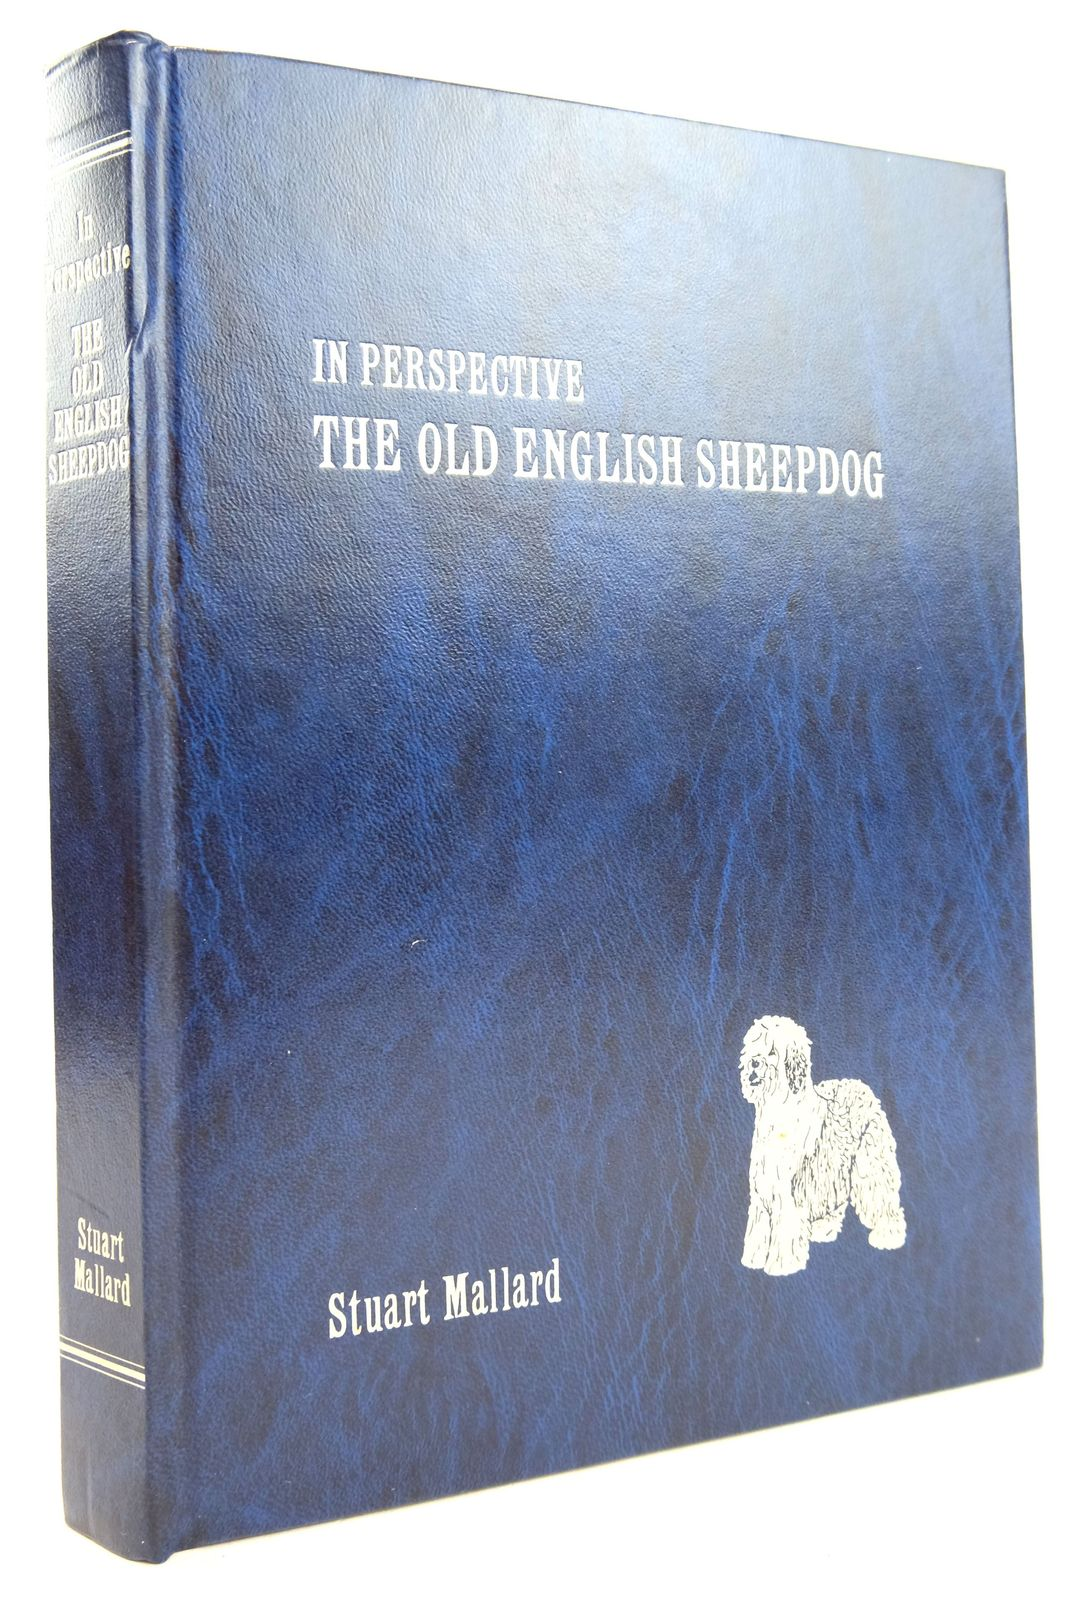 Photo of IN PERSPECTIVE THE OLD ENGLISH SHEEPDOG written by Mallard, Stuart (STOCK CODE: 1819313)  for sale by Stella & Rose's Books